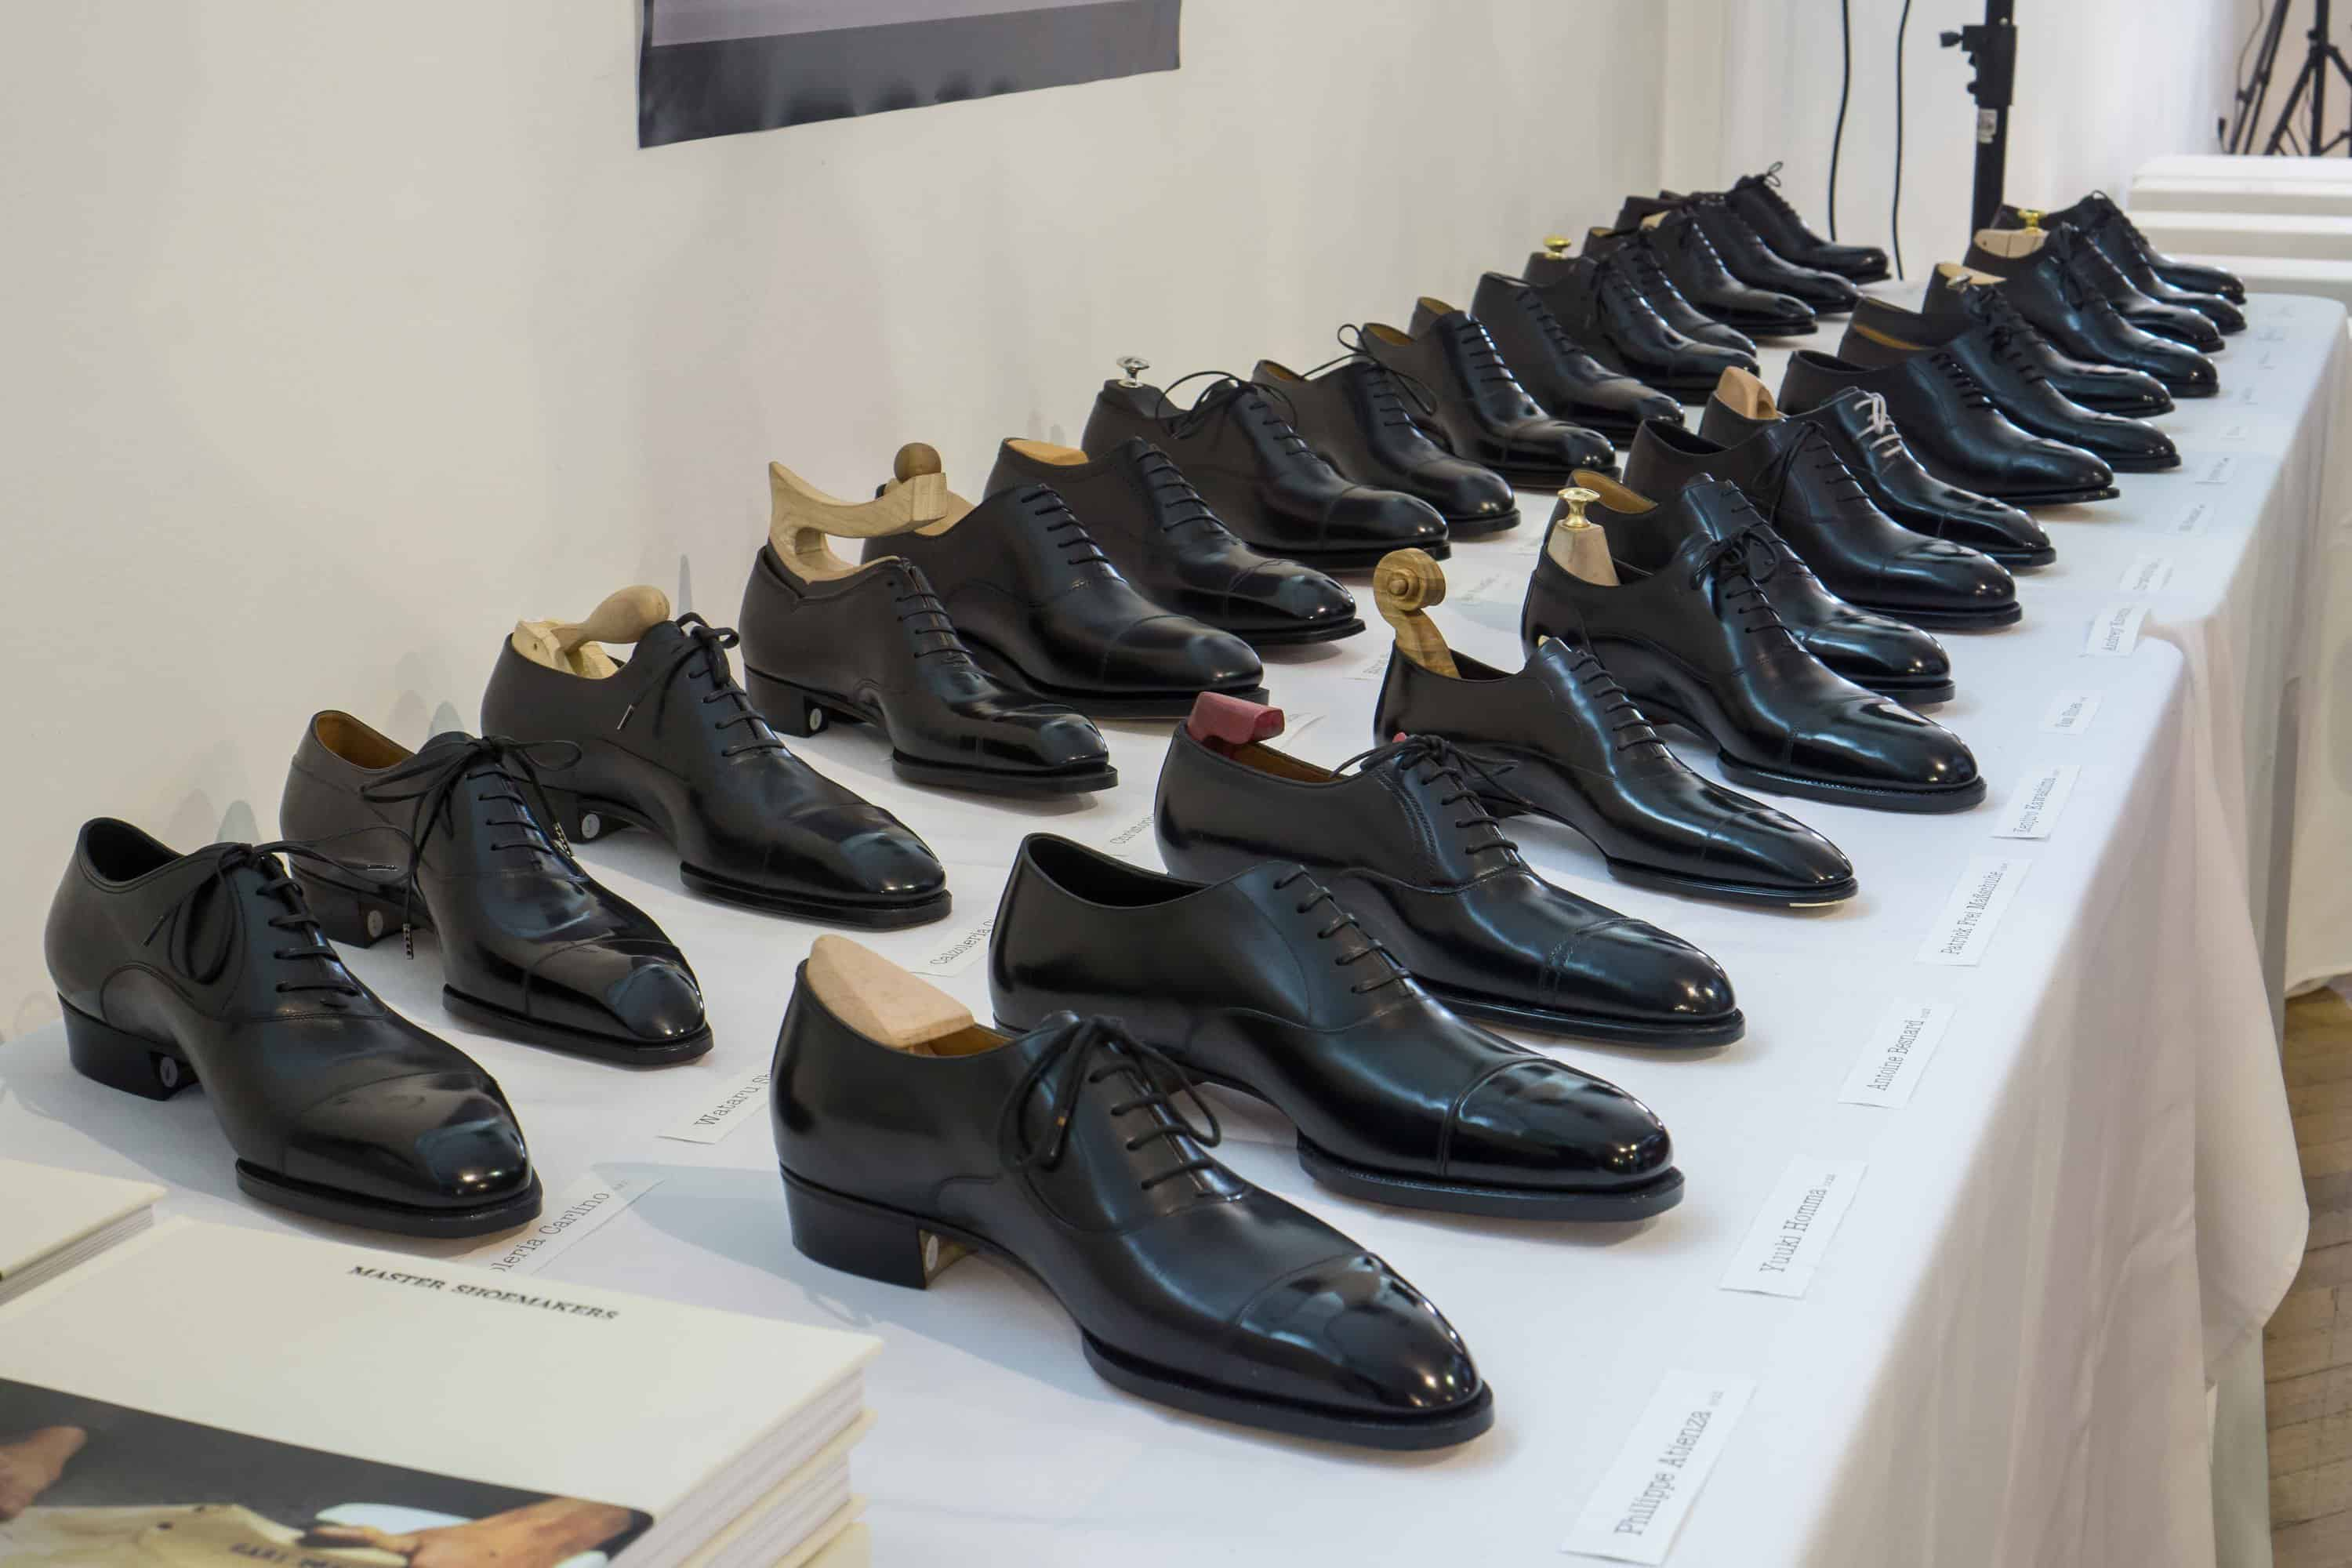 f2a703fa3 World Championships in Shoemaking 2019 – Call for competition ...